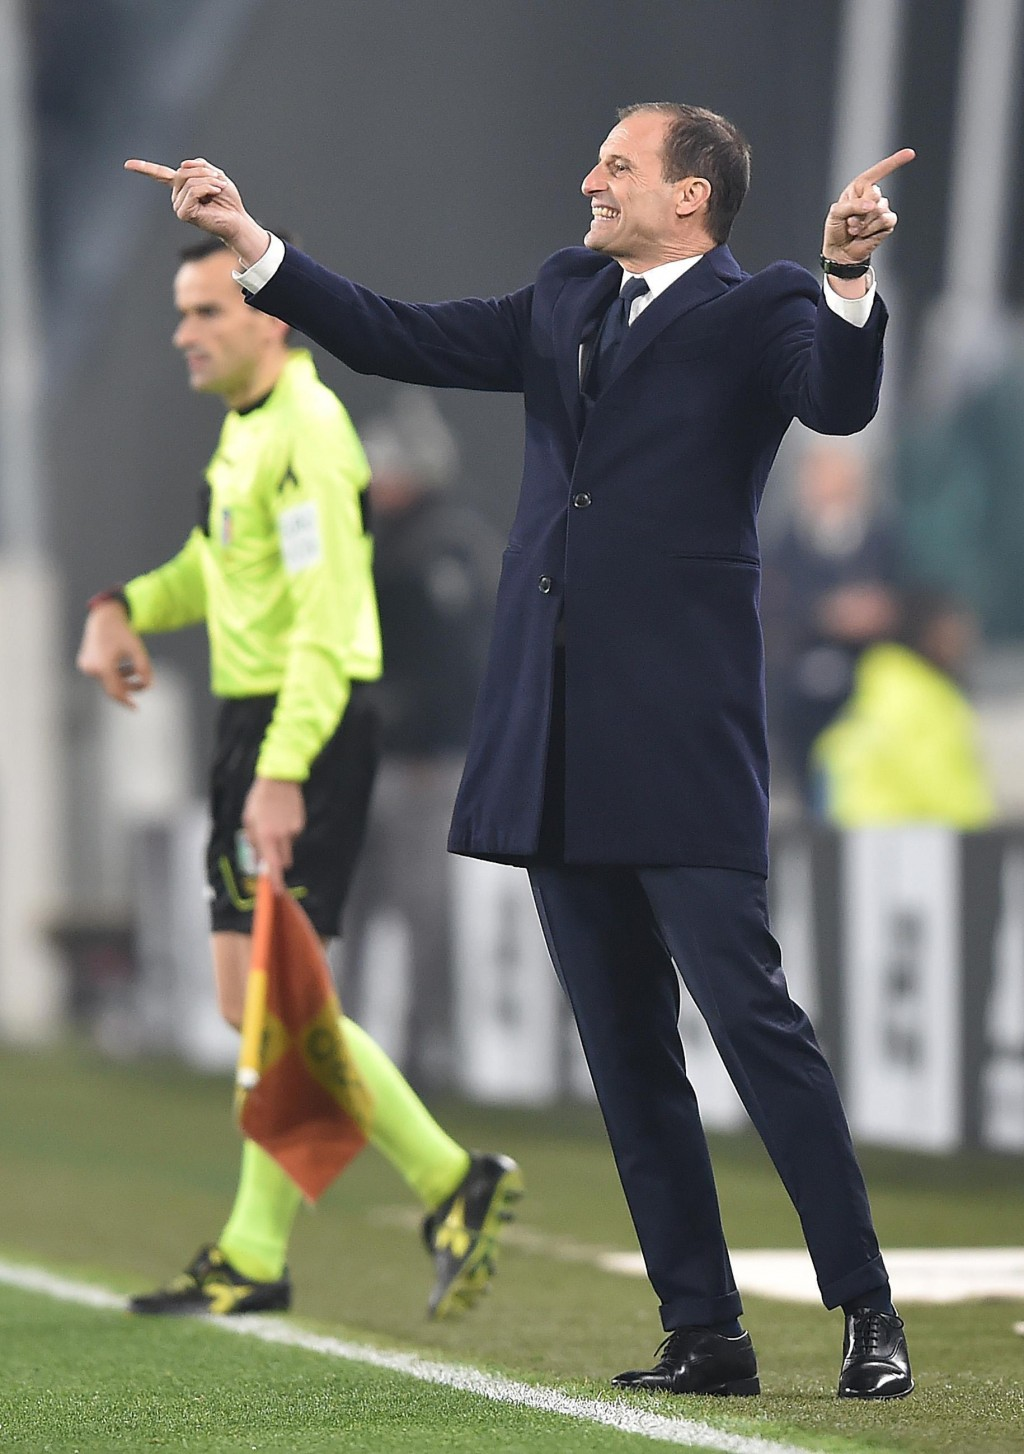 Juventus coach Massimiliano Allegri gestures during the Serie A soccer match between Juventus and Inter Milan at the Turin Allianz stadium, Italy, Fri